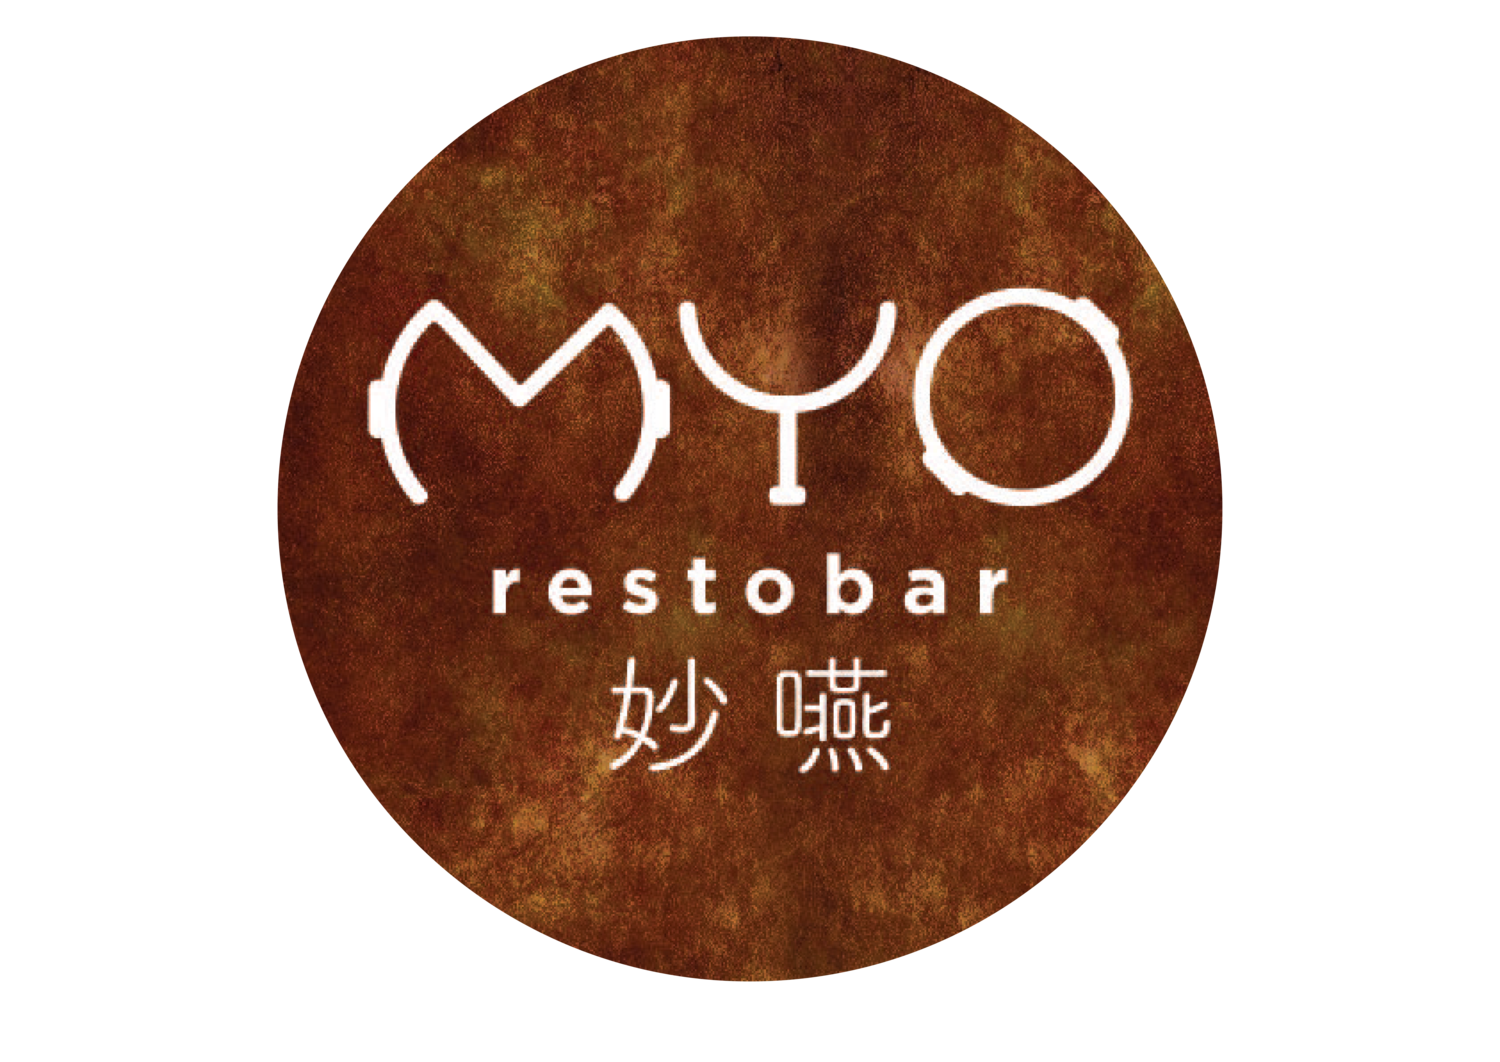 MYO restobar | Mouth Wateringly Good!